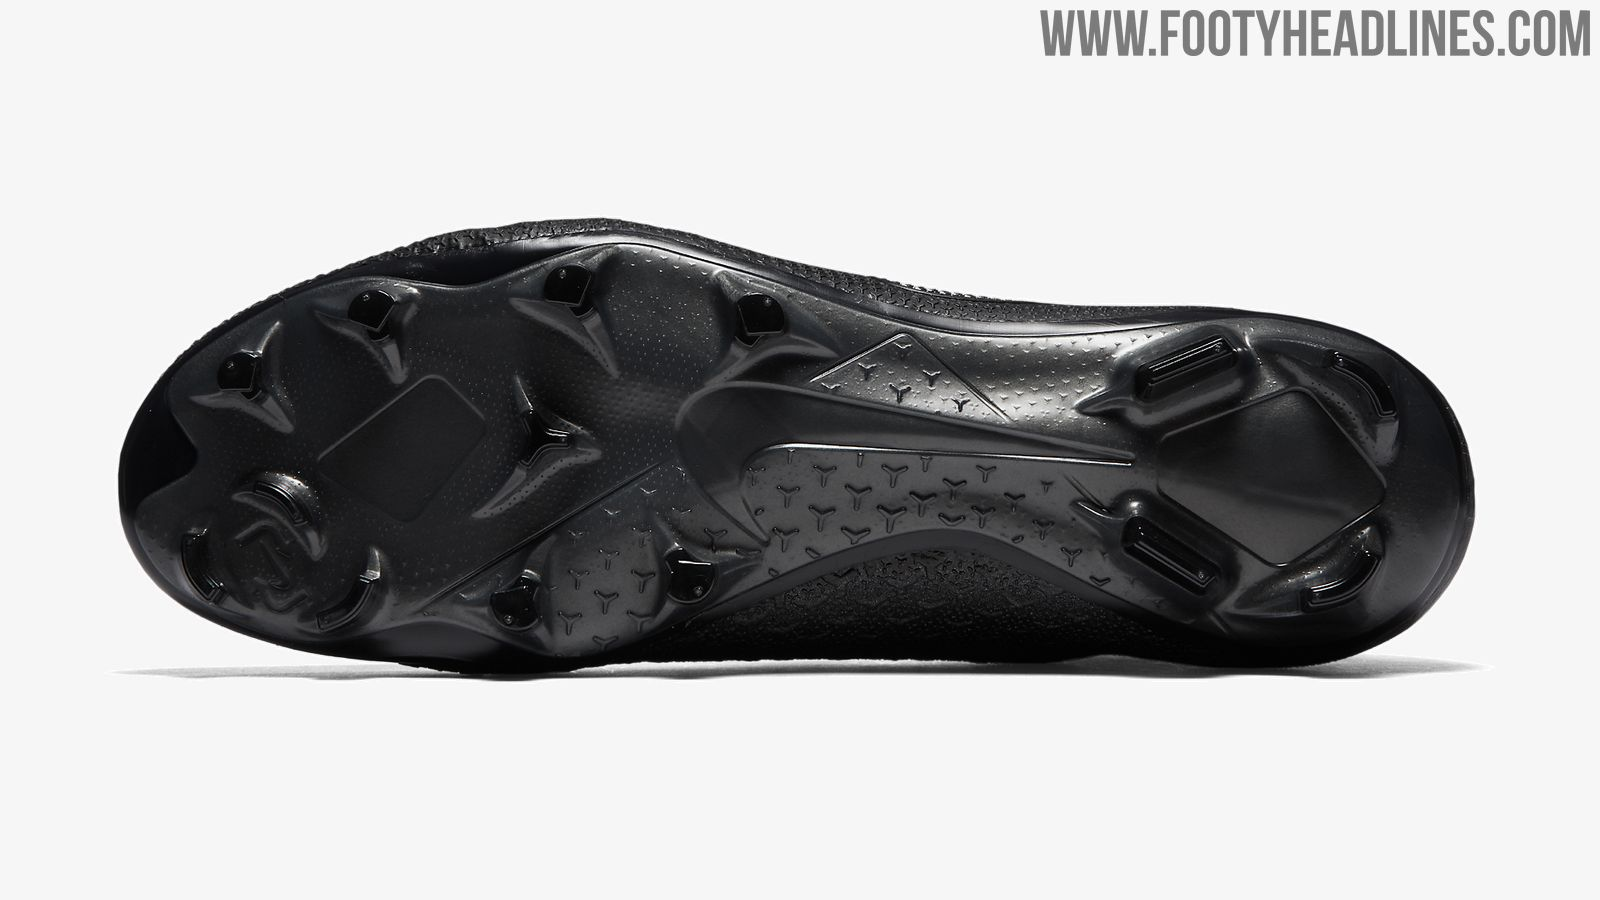 0ad13b510 Blackout Nike Phantom Vision Elite Stealth Ops Boots Released ...